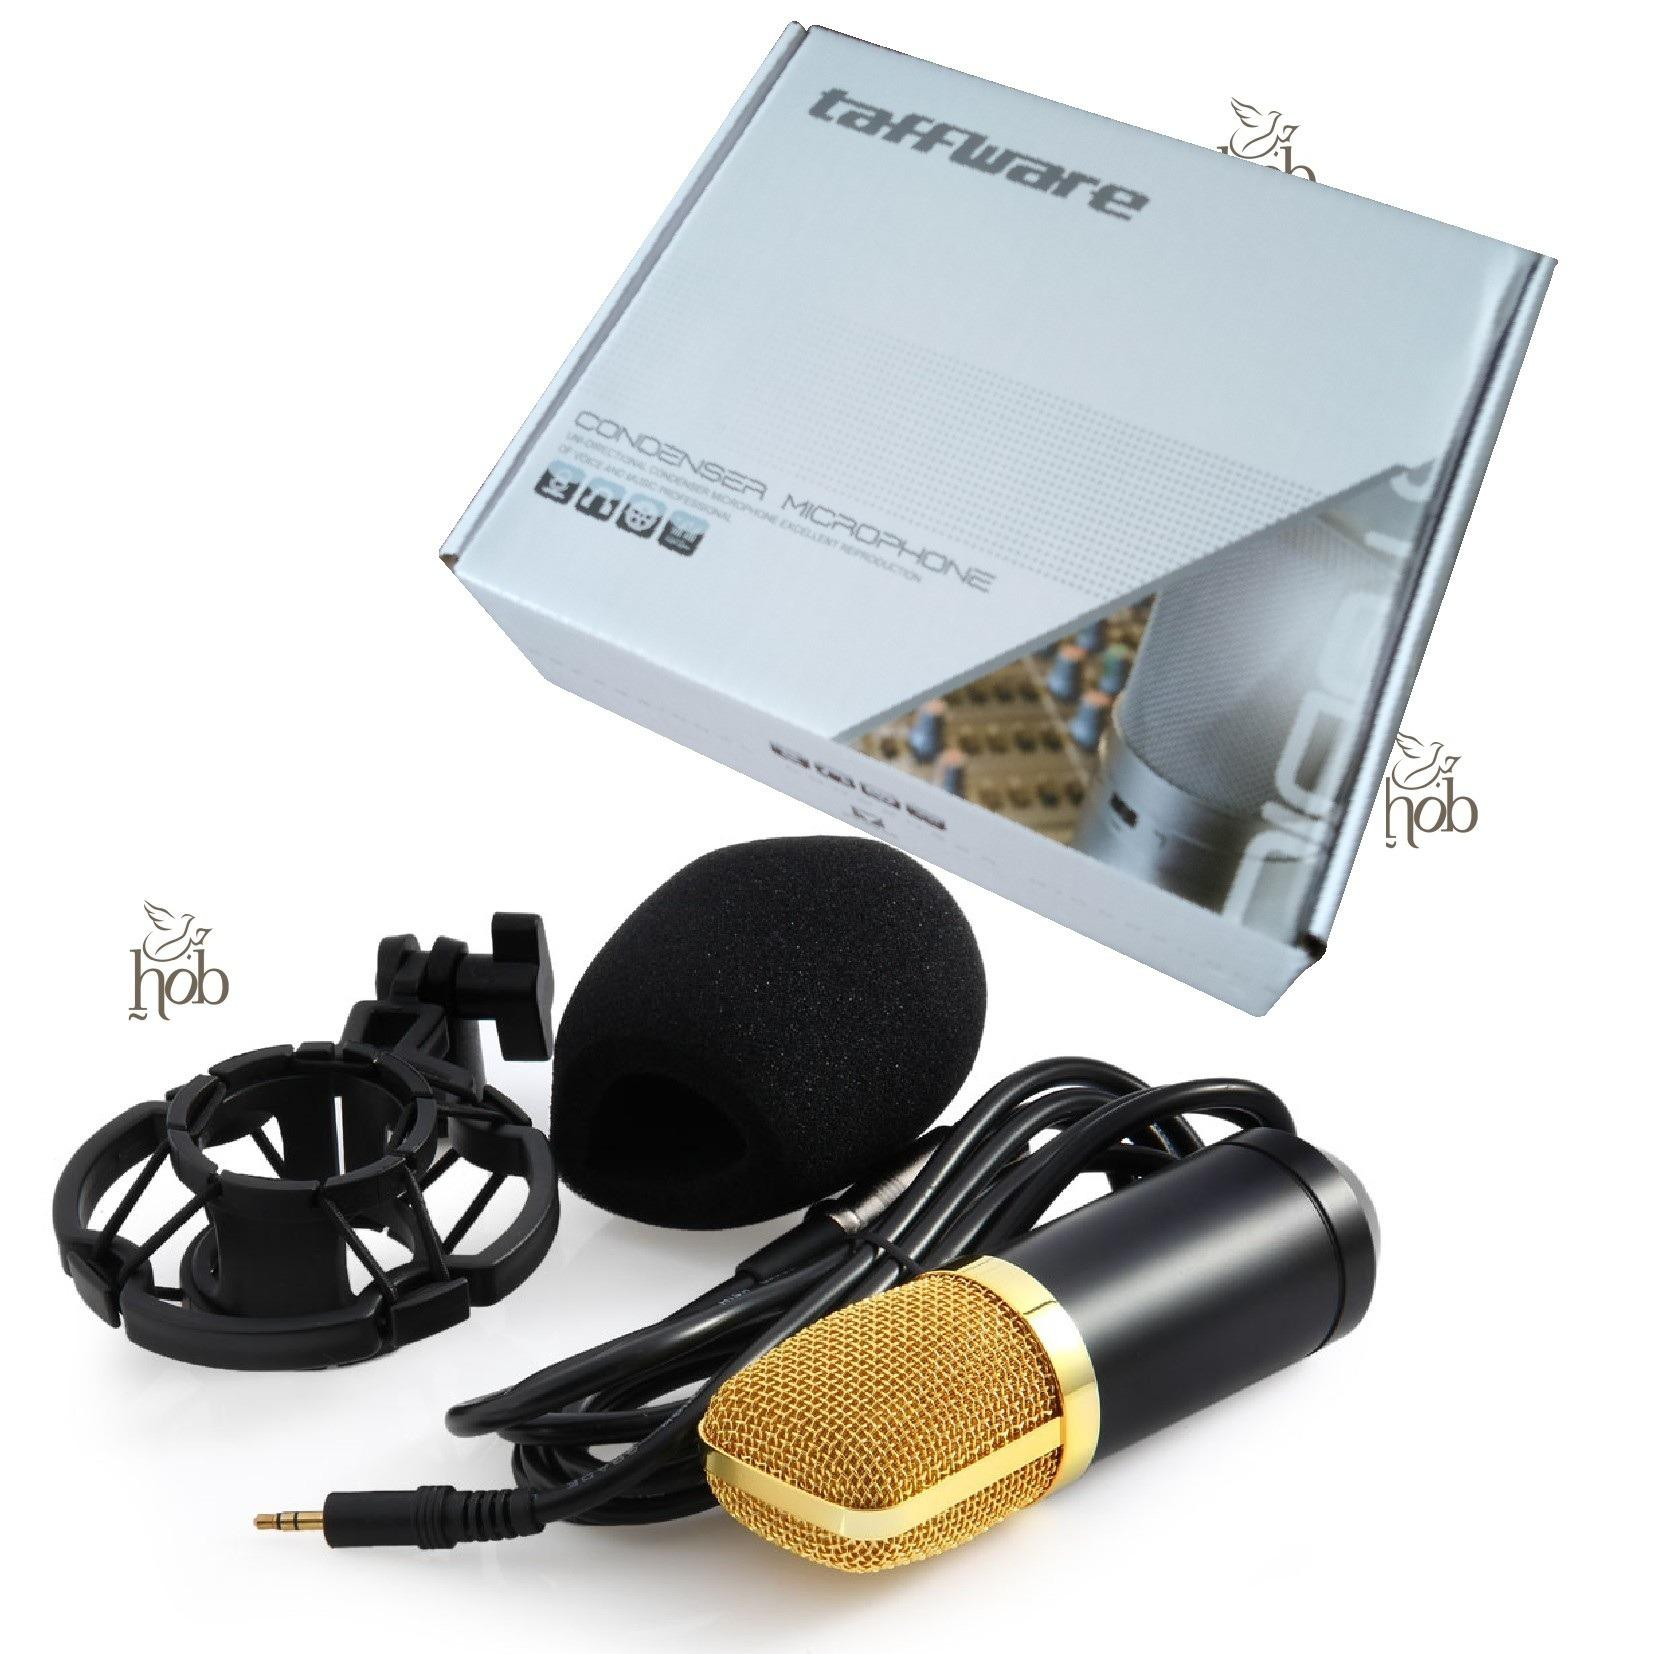 Harga Bm 700 Microphone Mic With Shock Proof Mount Condenser Studio Gold Taffware Terbaik